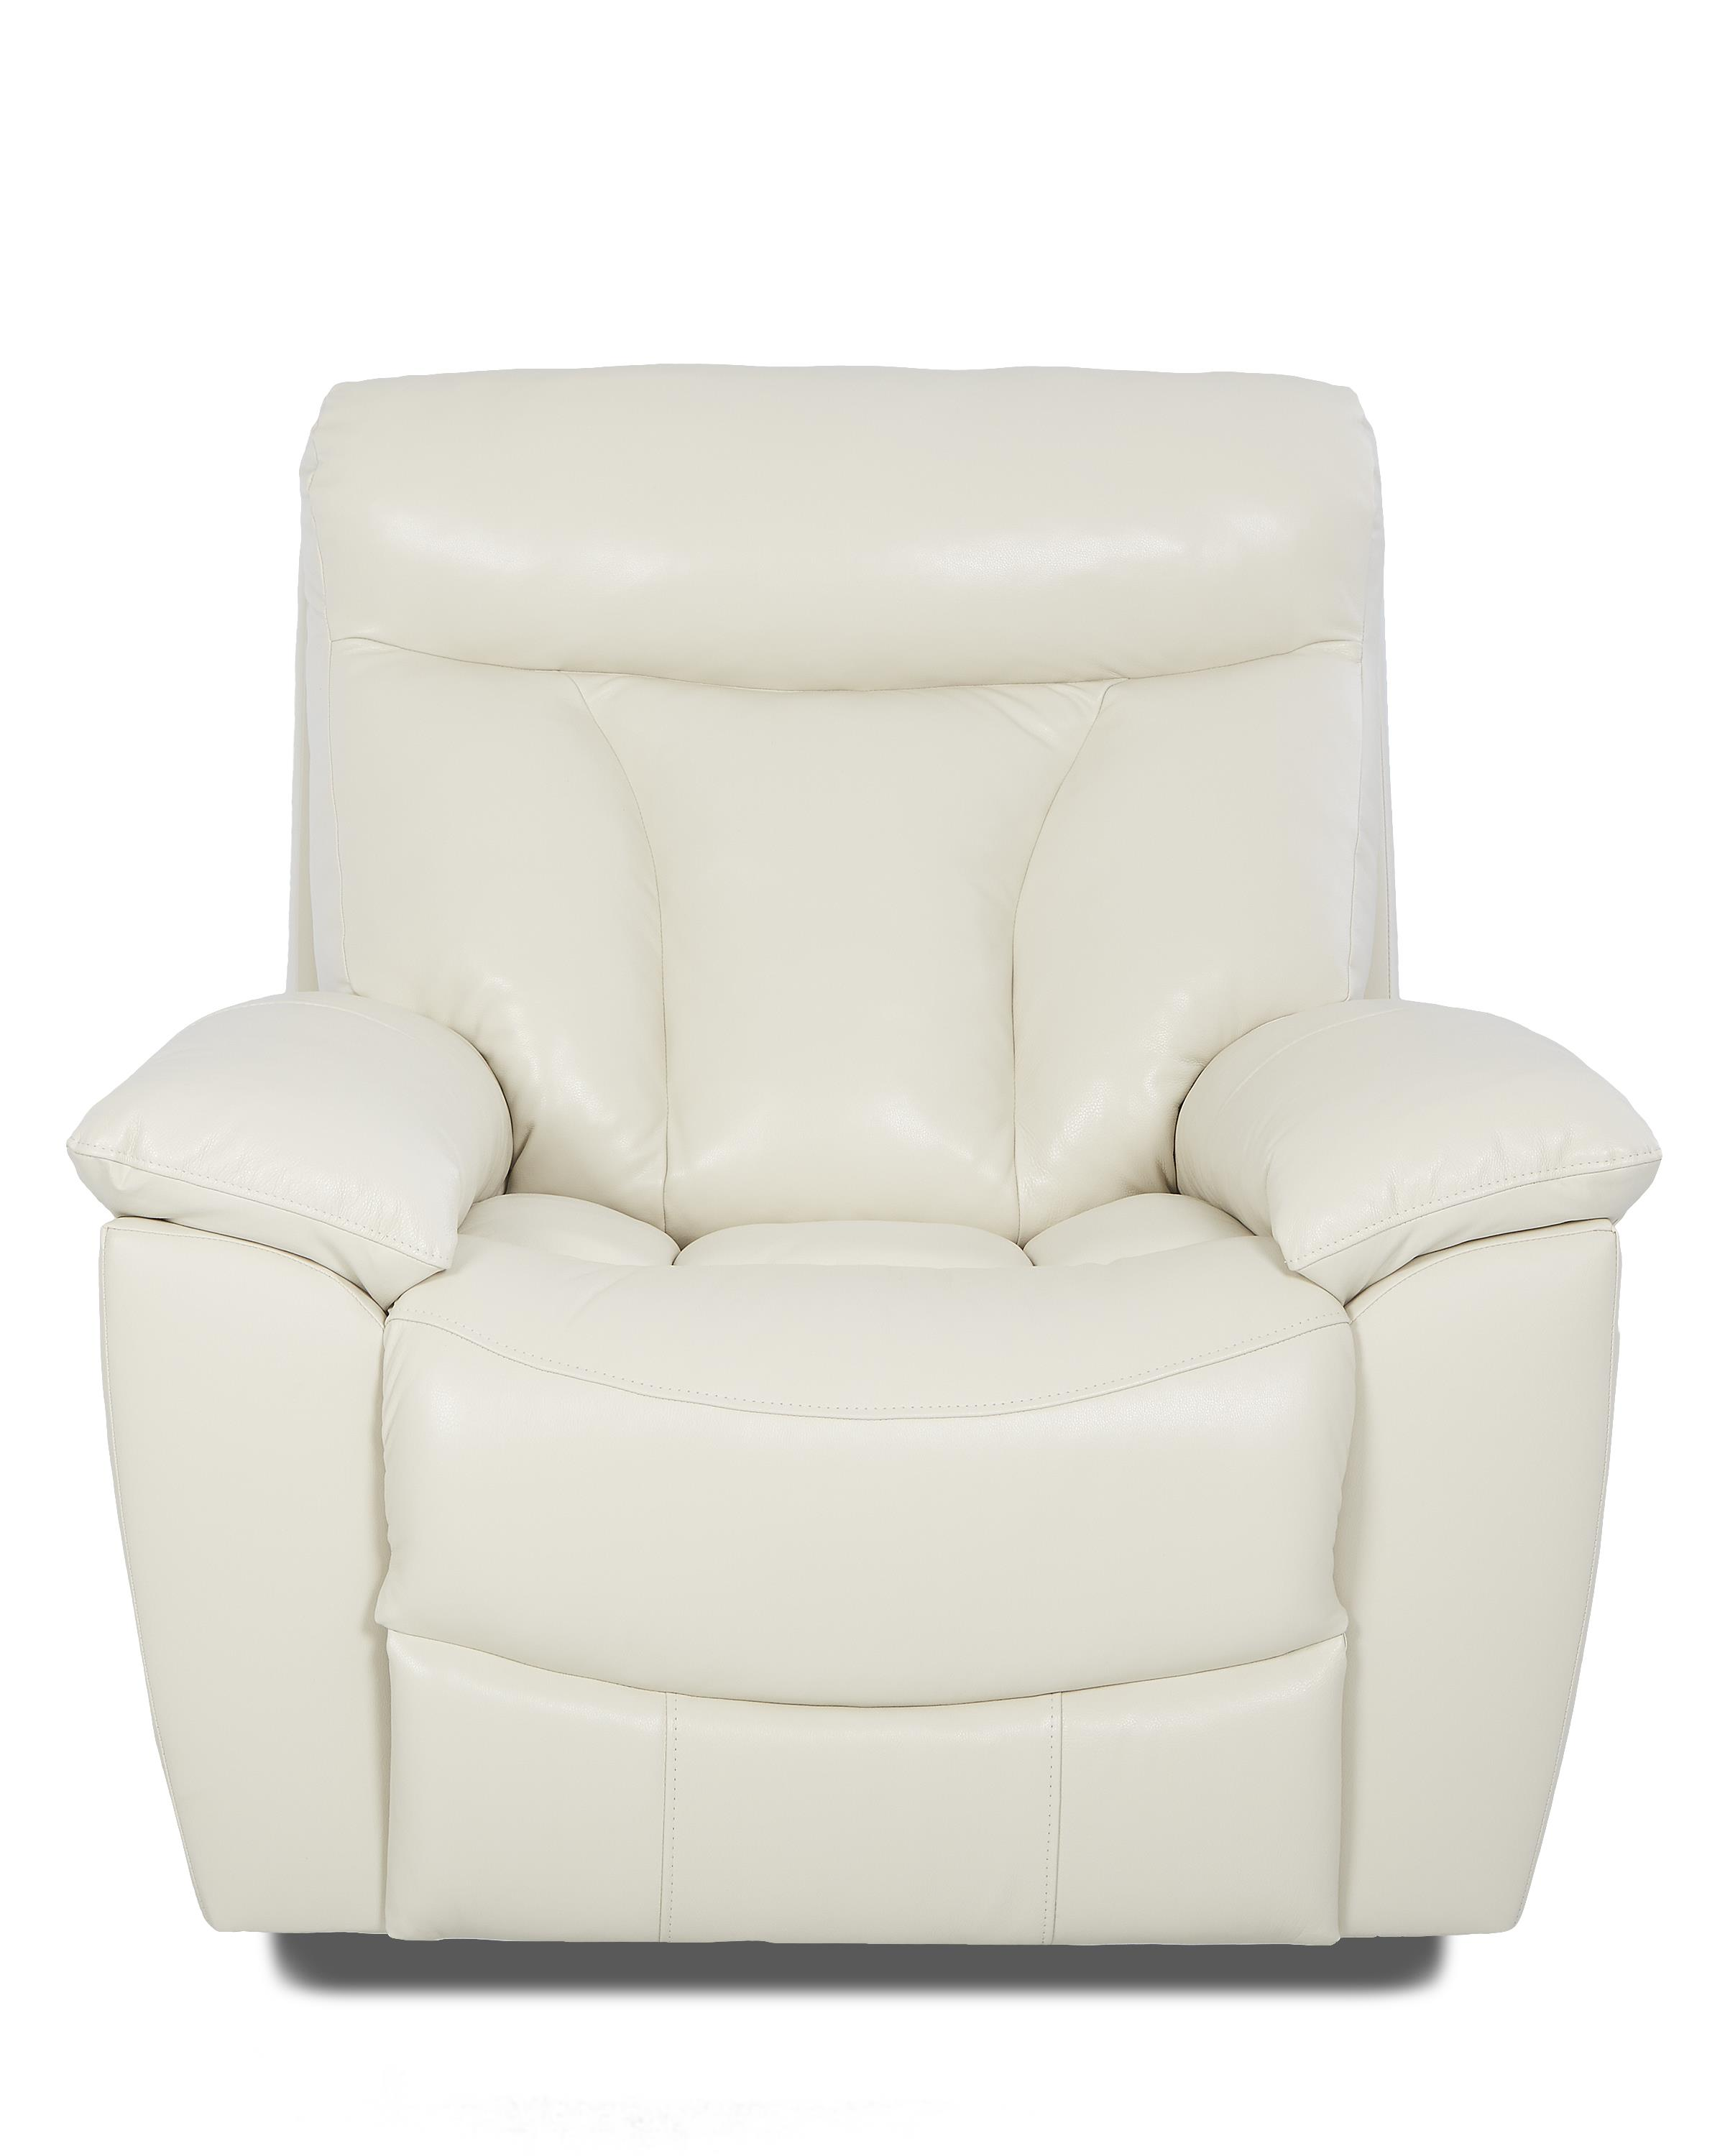 Deluxe Reclining Chairs by Klaussner at Northeast Factory Direct